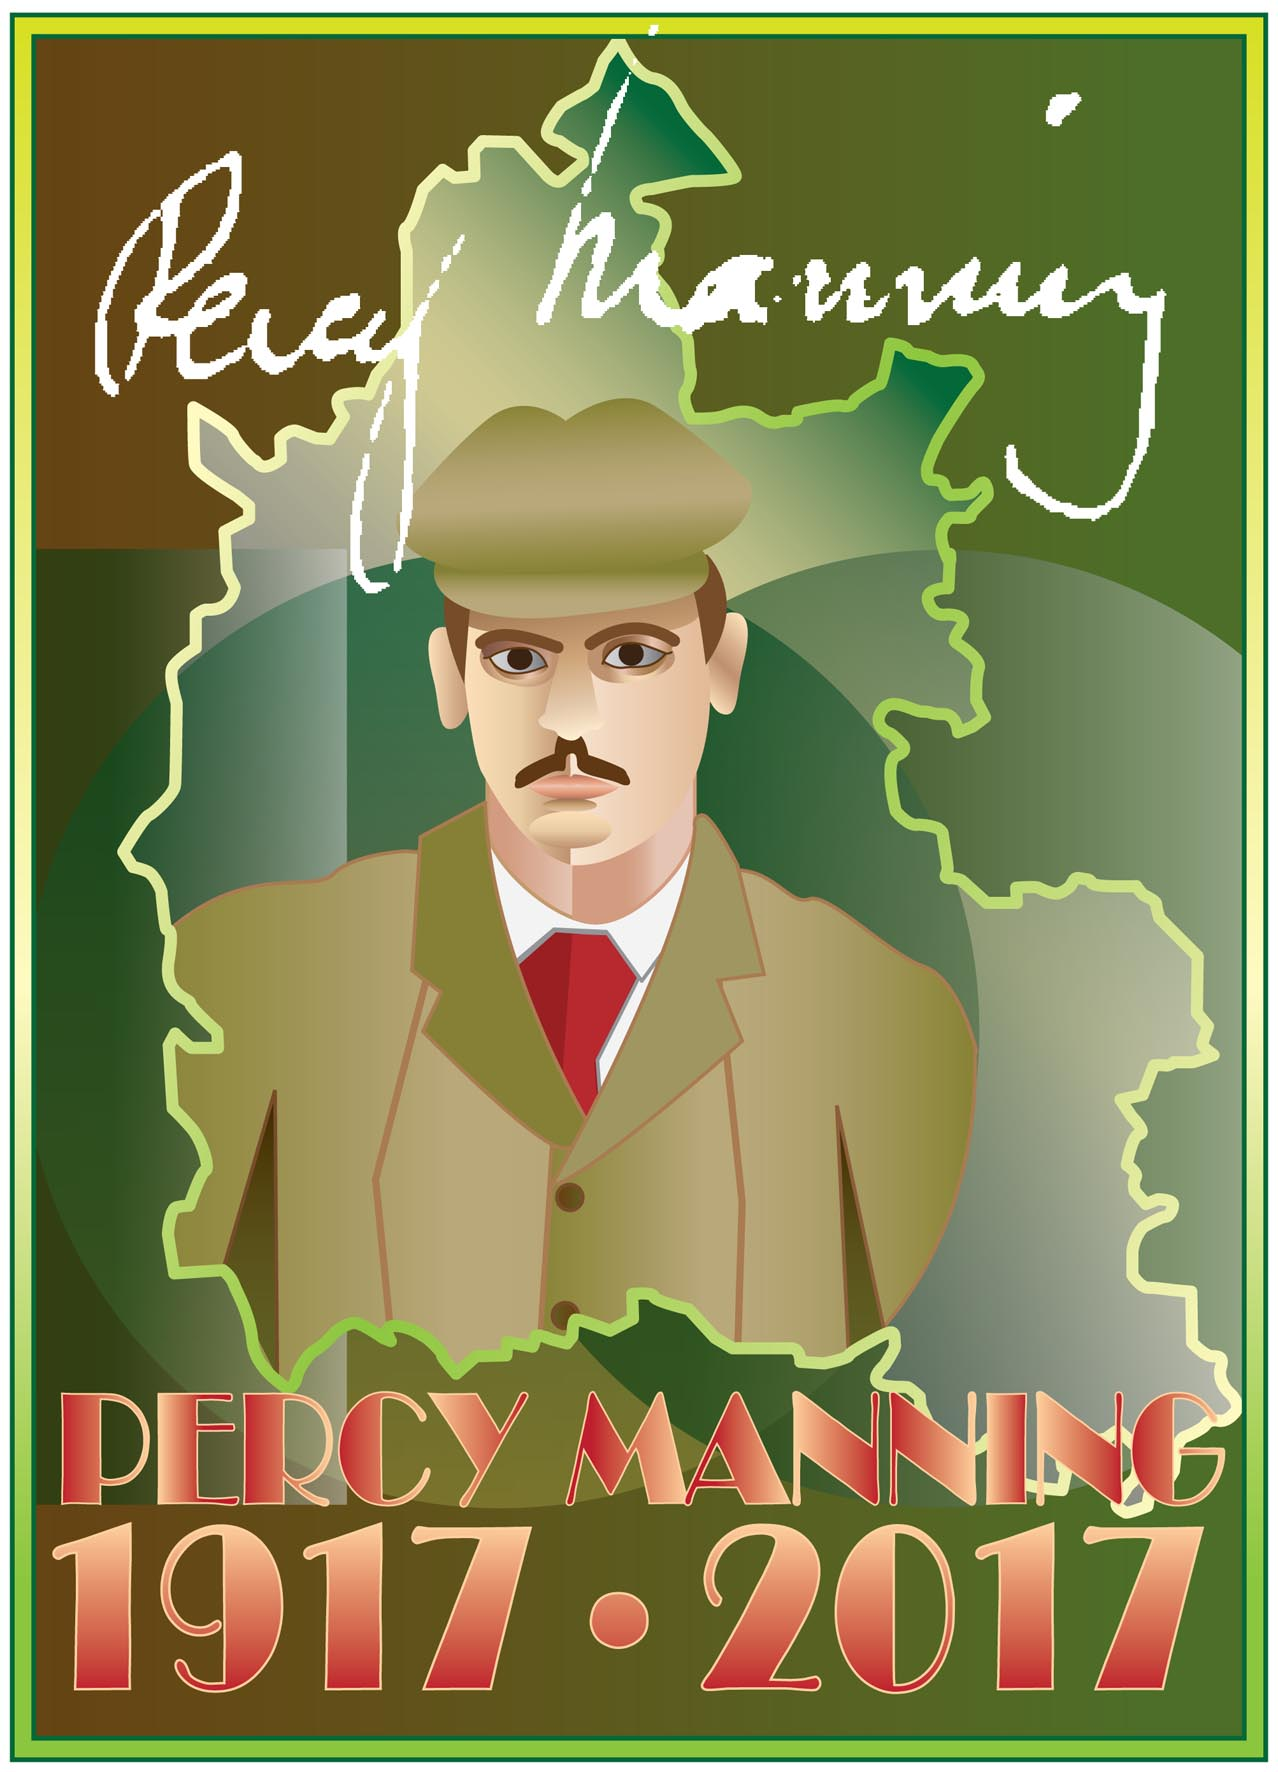 Percy Manning Centenary Concert: Reviving the Revival